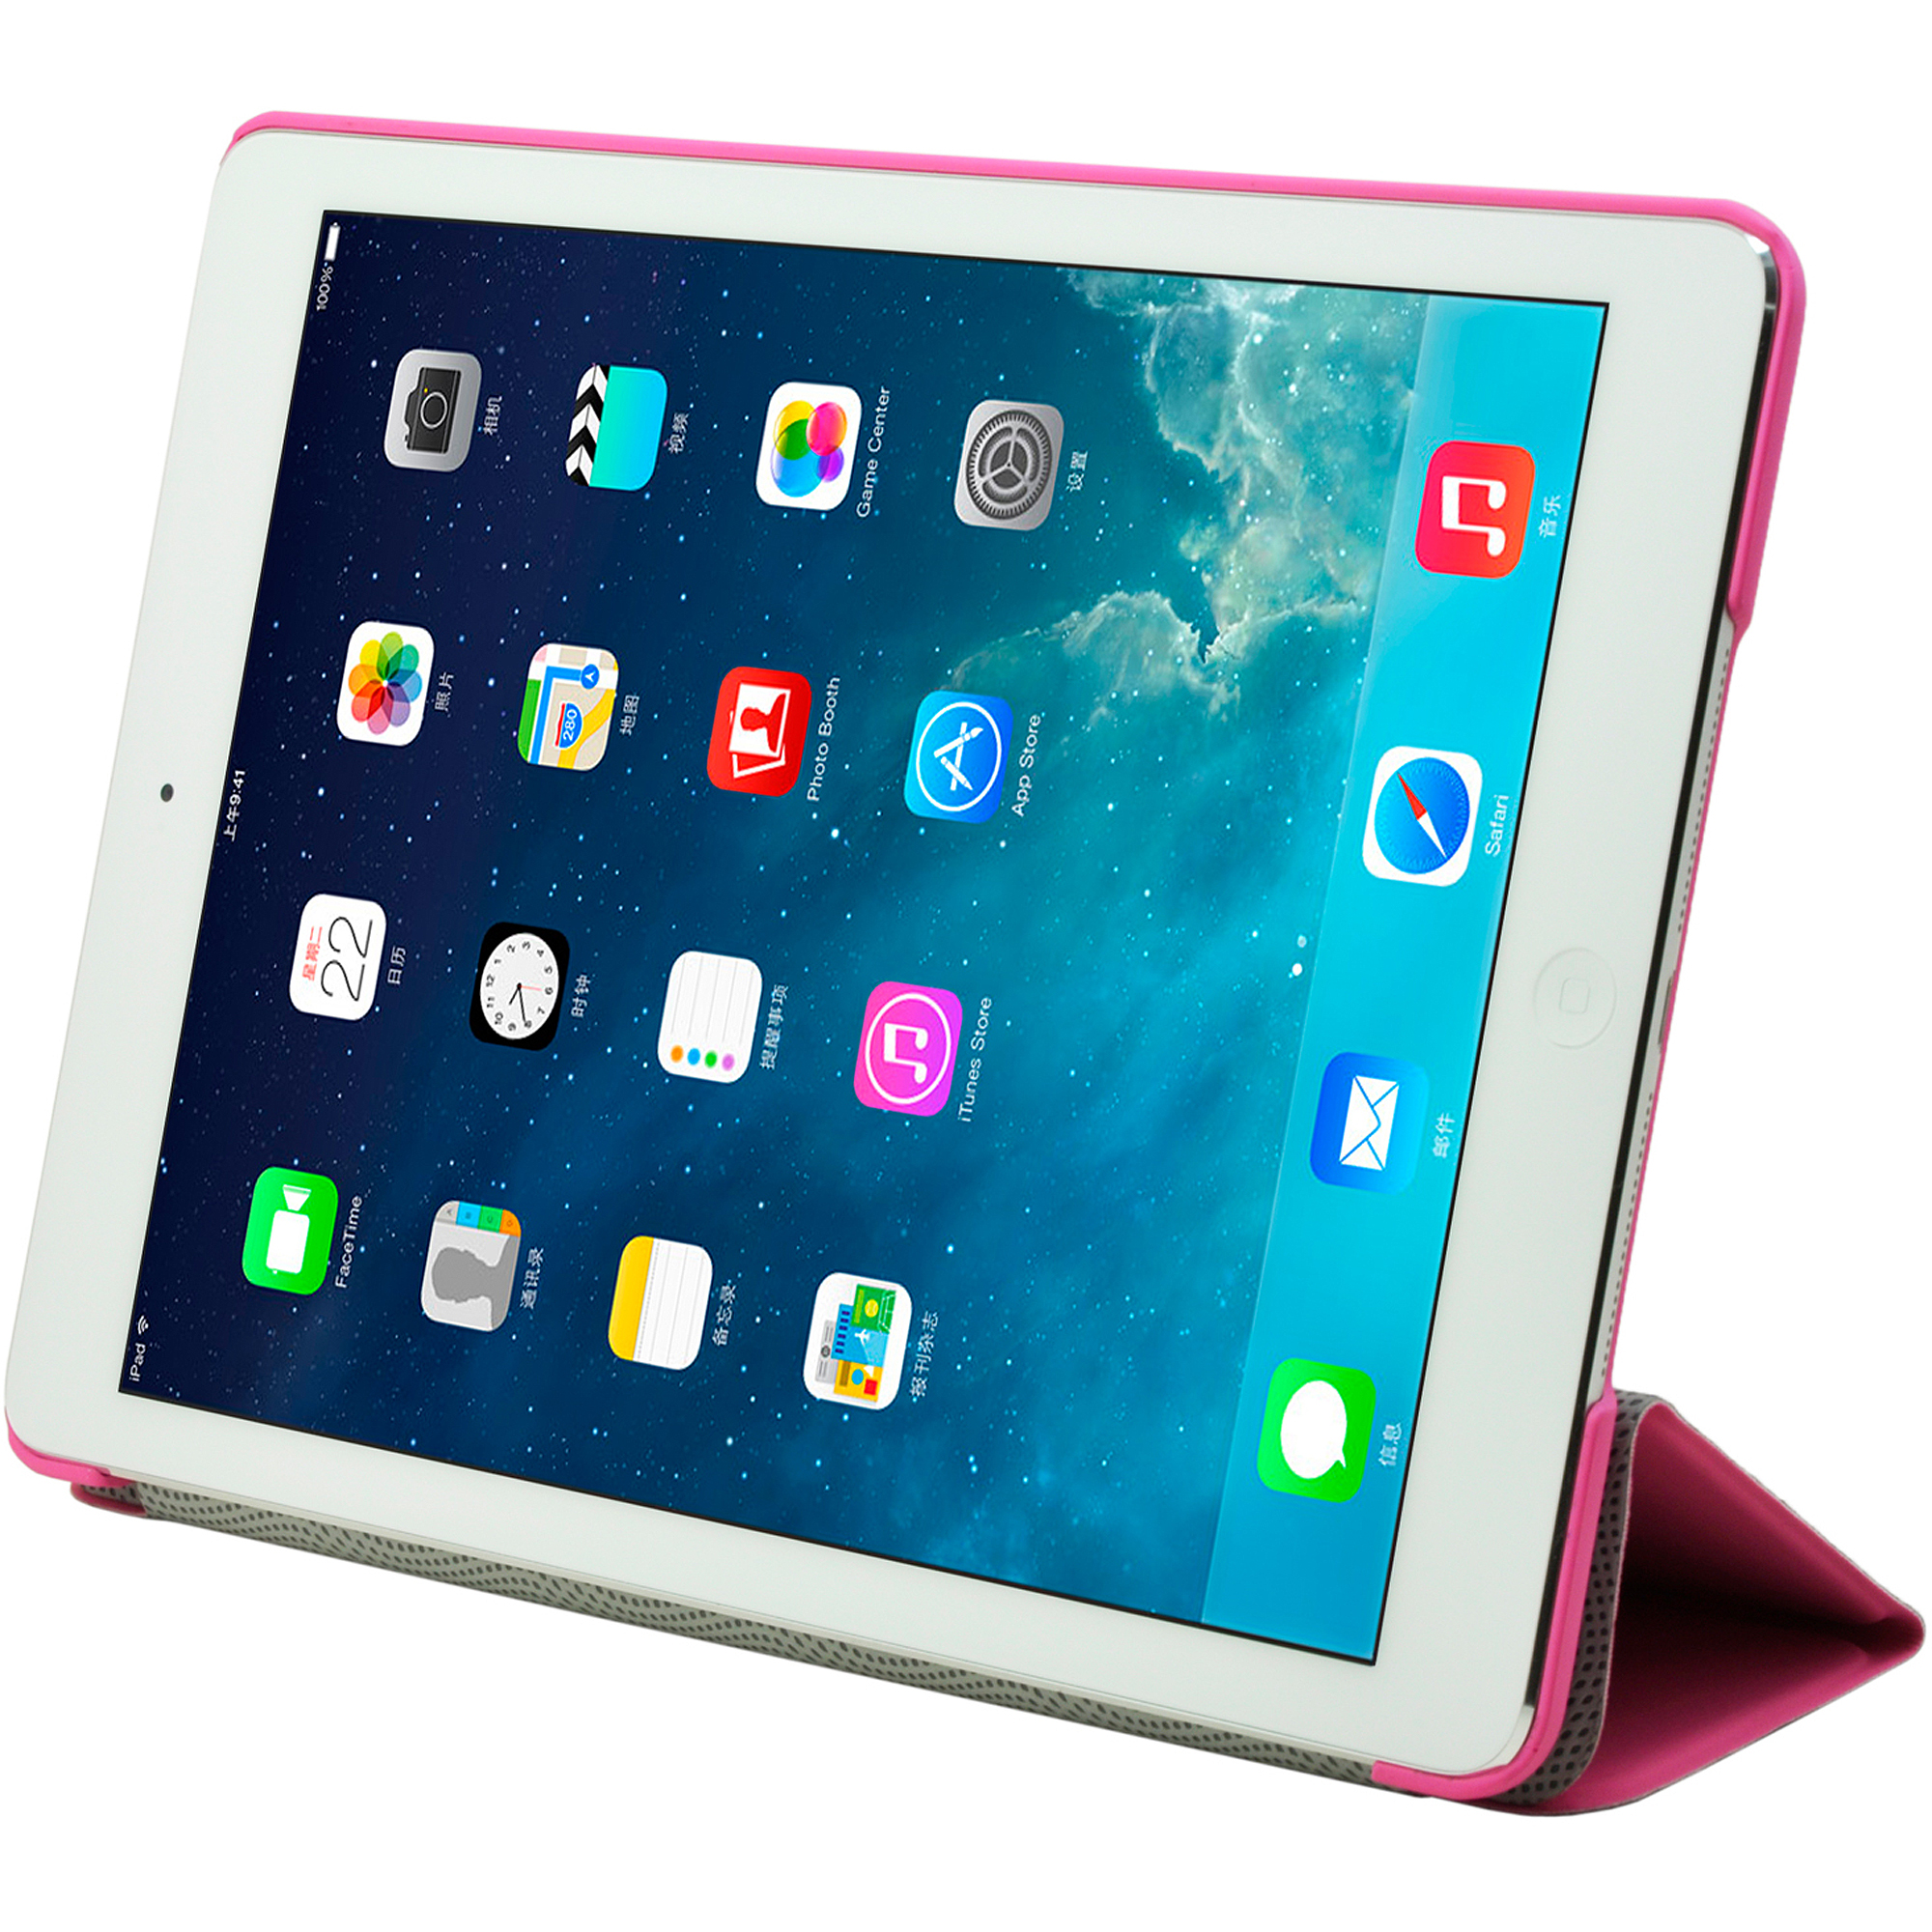 Cirago Slim-fit PU Cover Case for Apple iPad Air, Pink